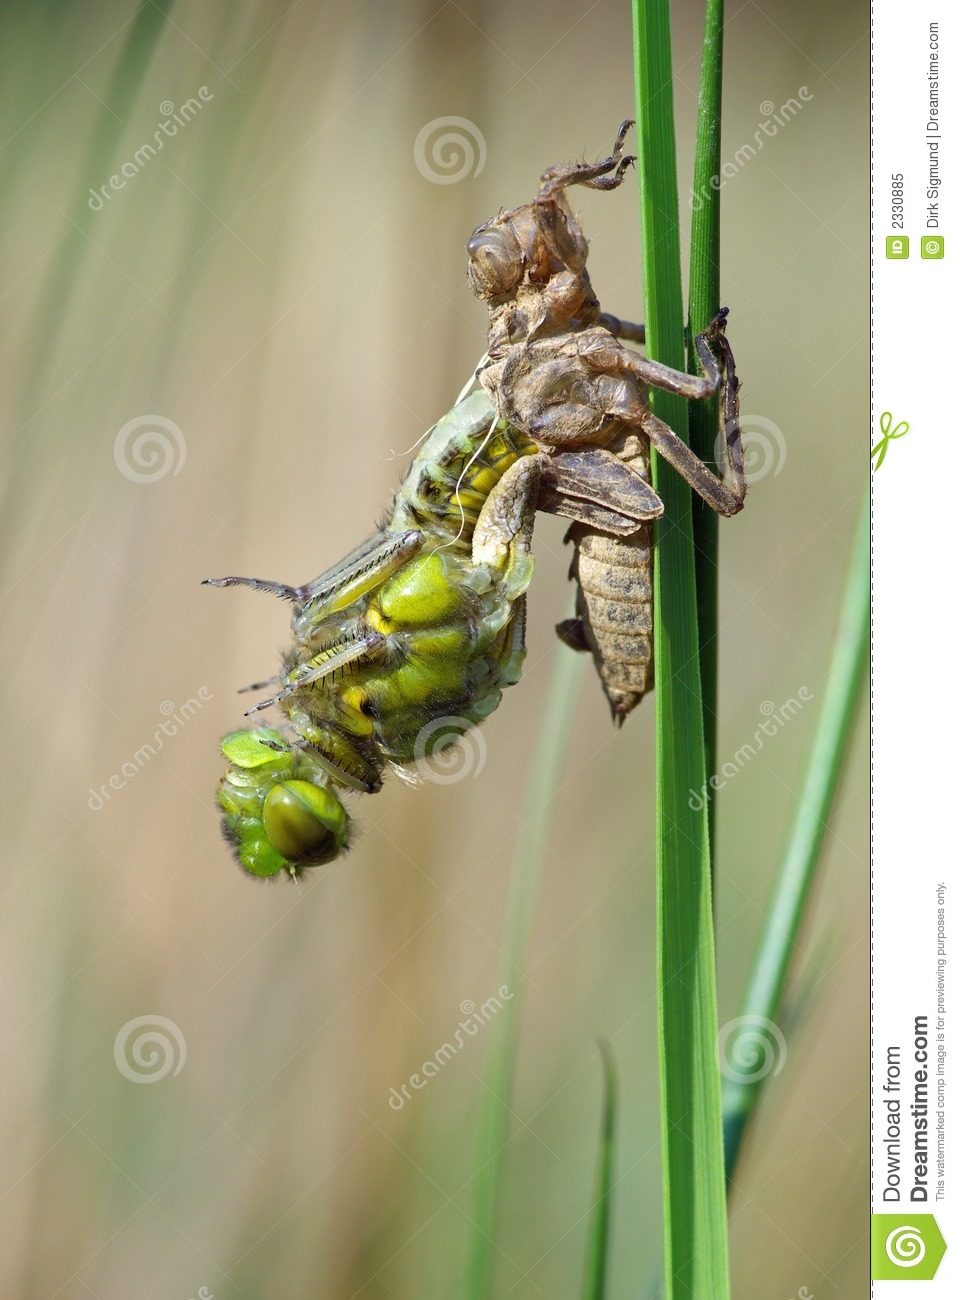 Dragonfly Transformation 1 Stock Image Image Of Molting